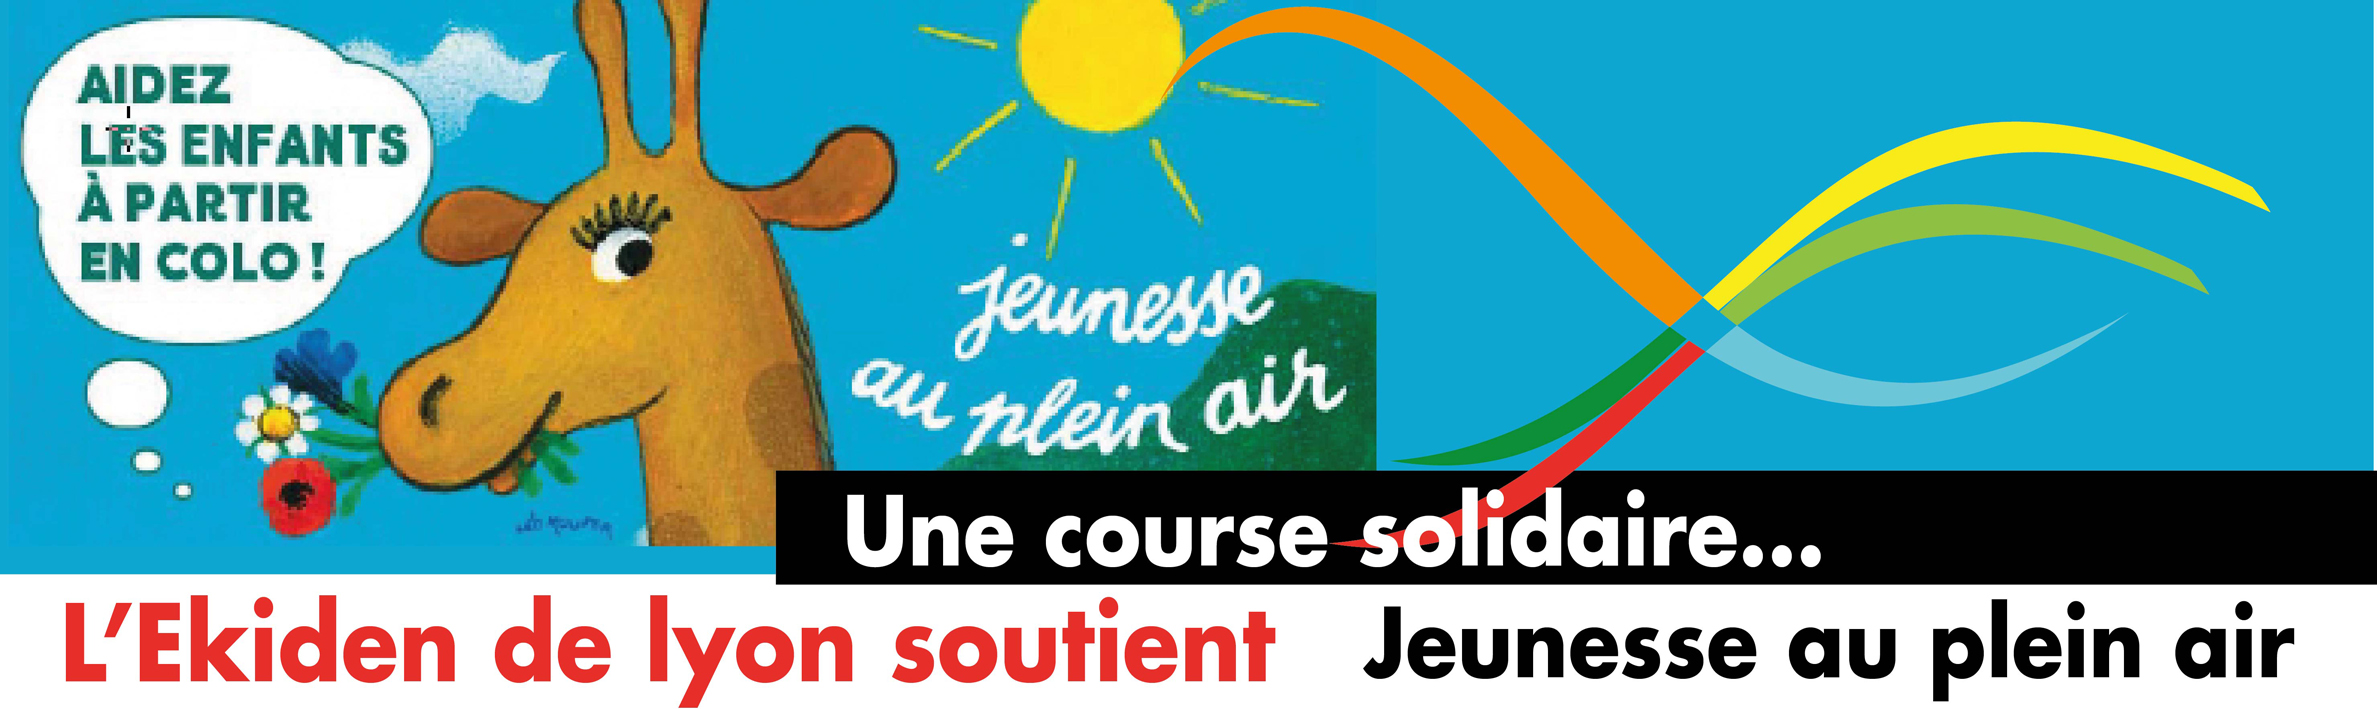 coursesolidaire.jpg